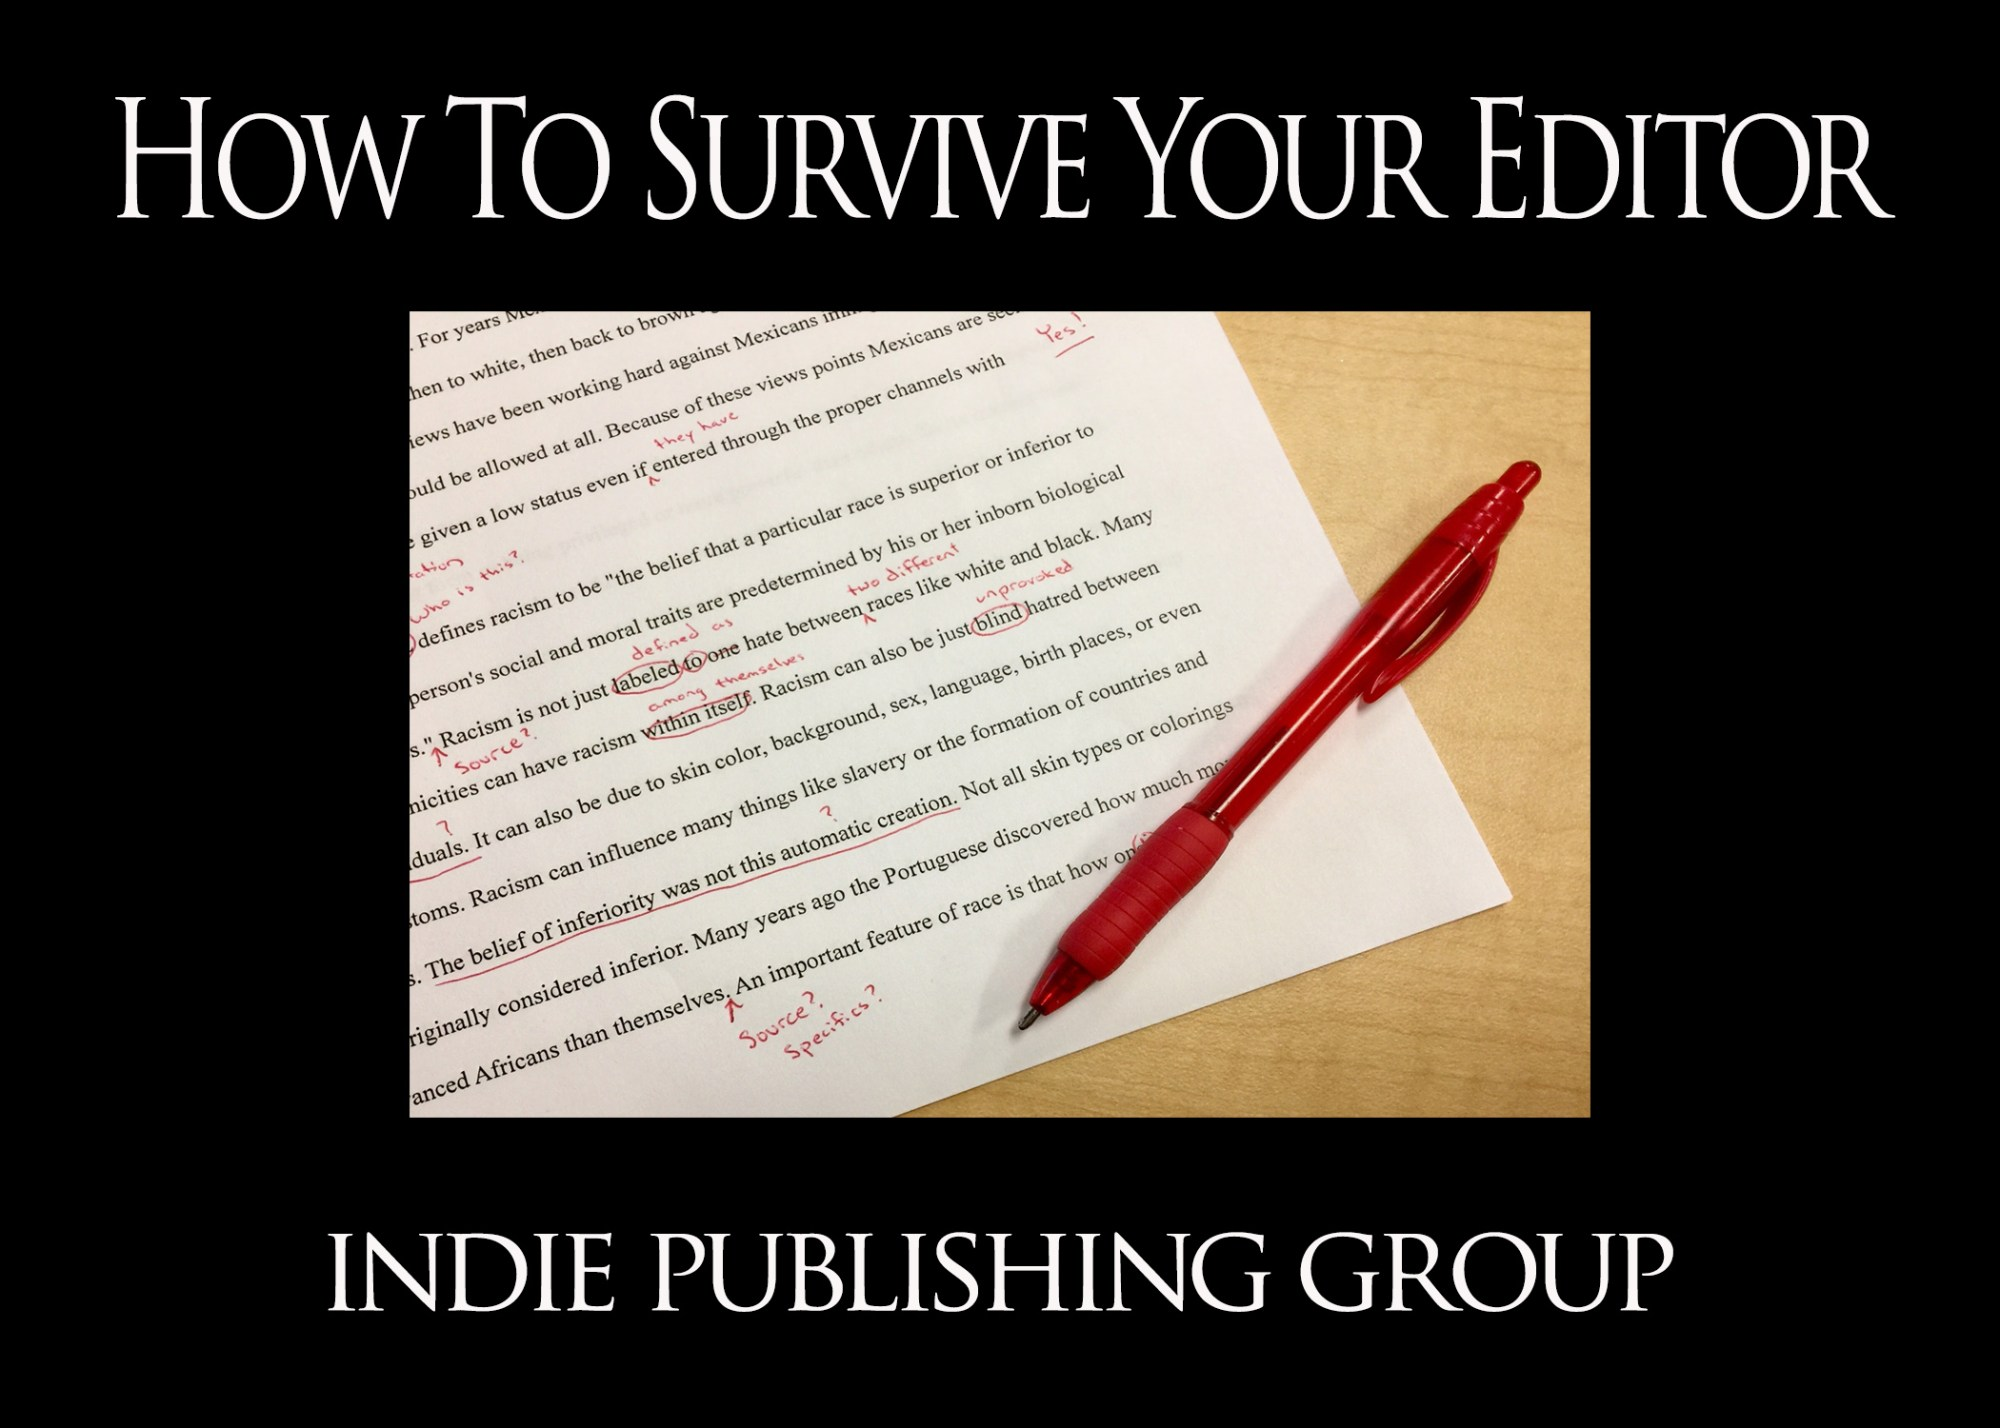 How To Survive Your Editor!